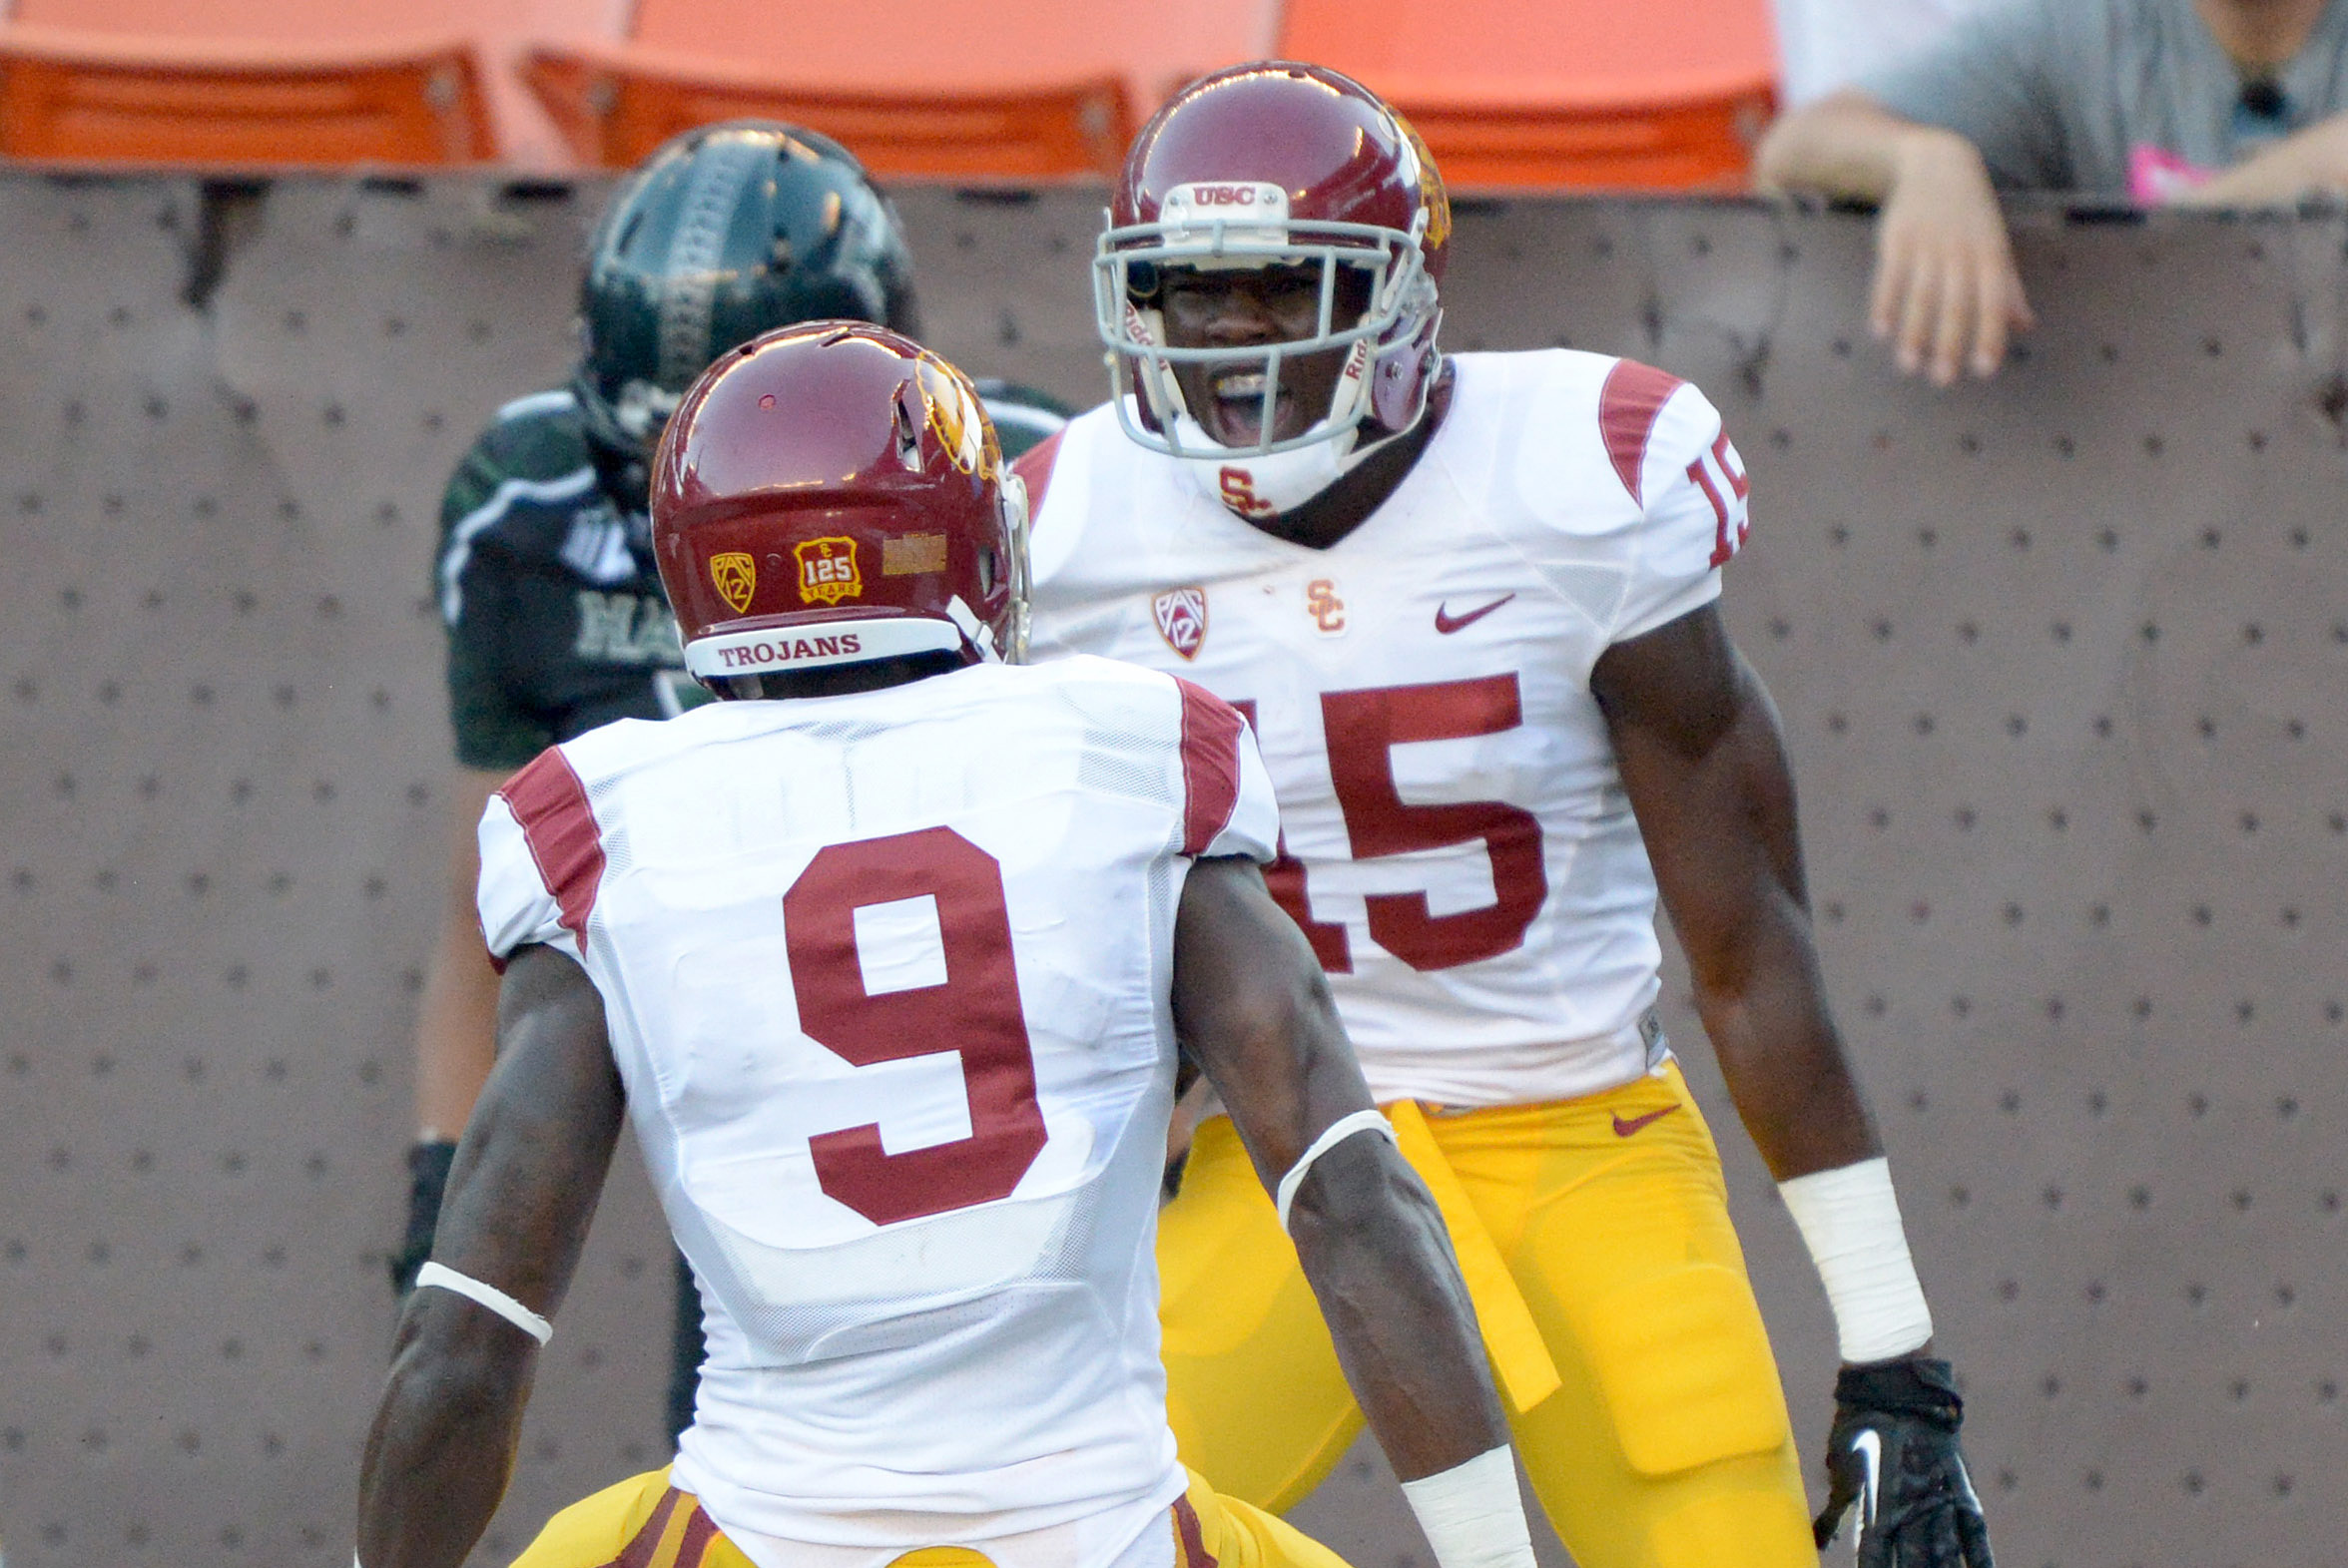 newest b1b7f 95766 Marqise Lee vs. Nelson Agholor: Who Will Graduate USC with ...